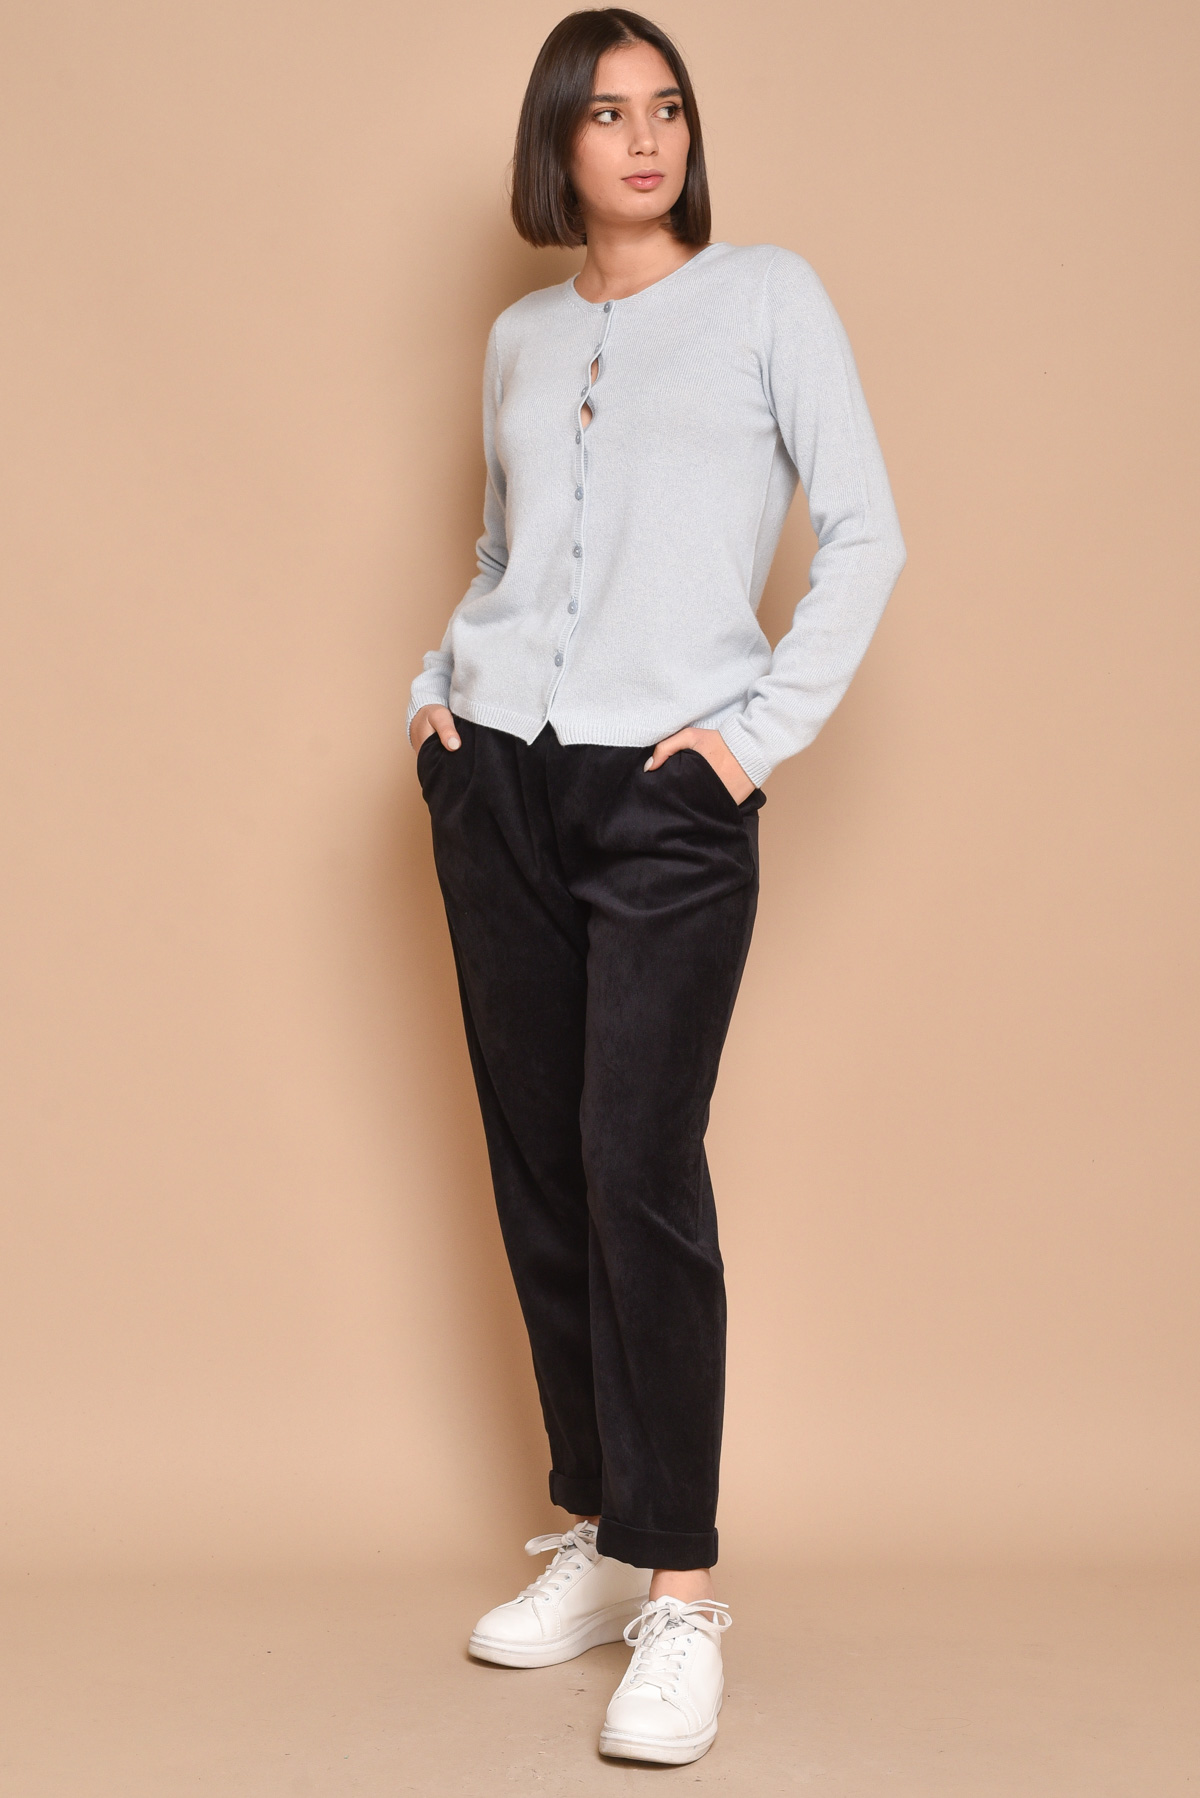 KOREAN NECKLINE CASHMERE CARDIGAN  for woman - LIGHT BLUE - Paquito Pronto Moda Shop Online